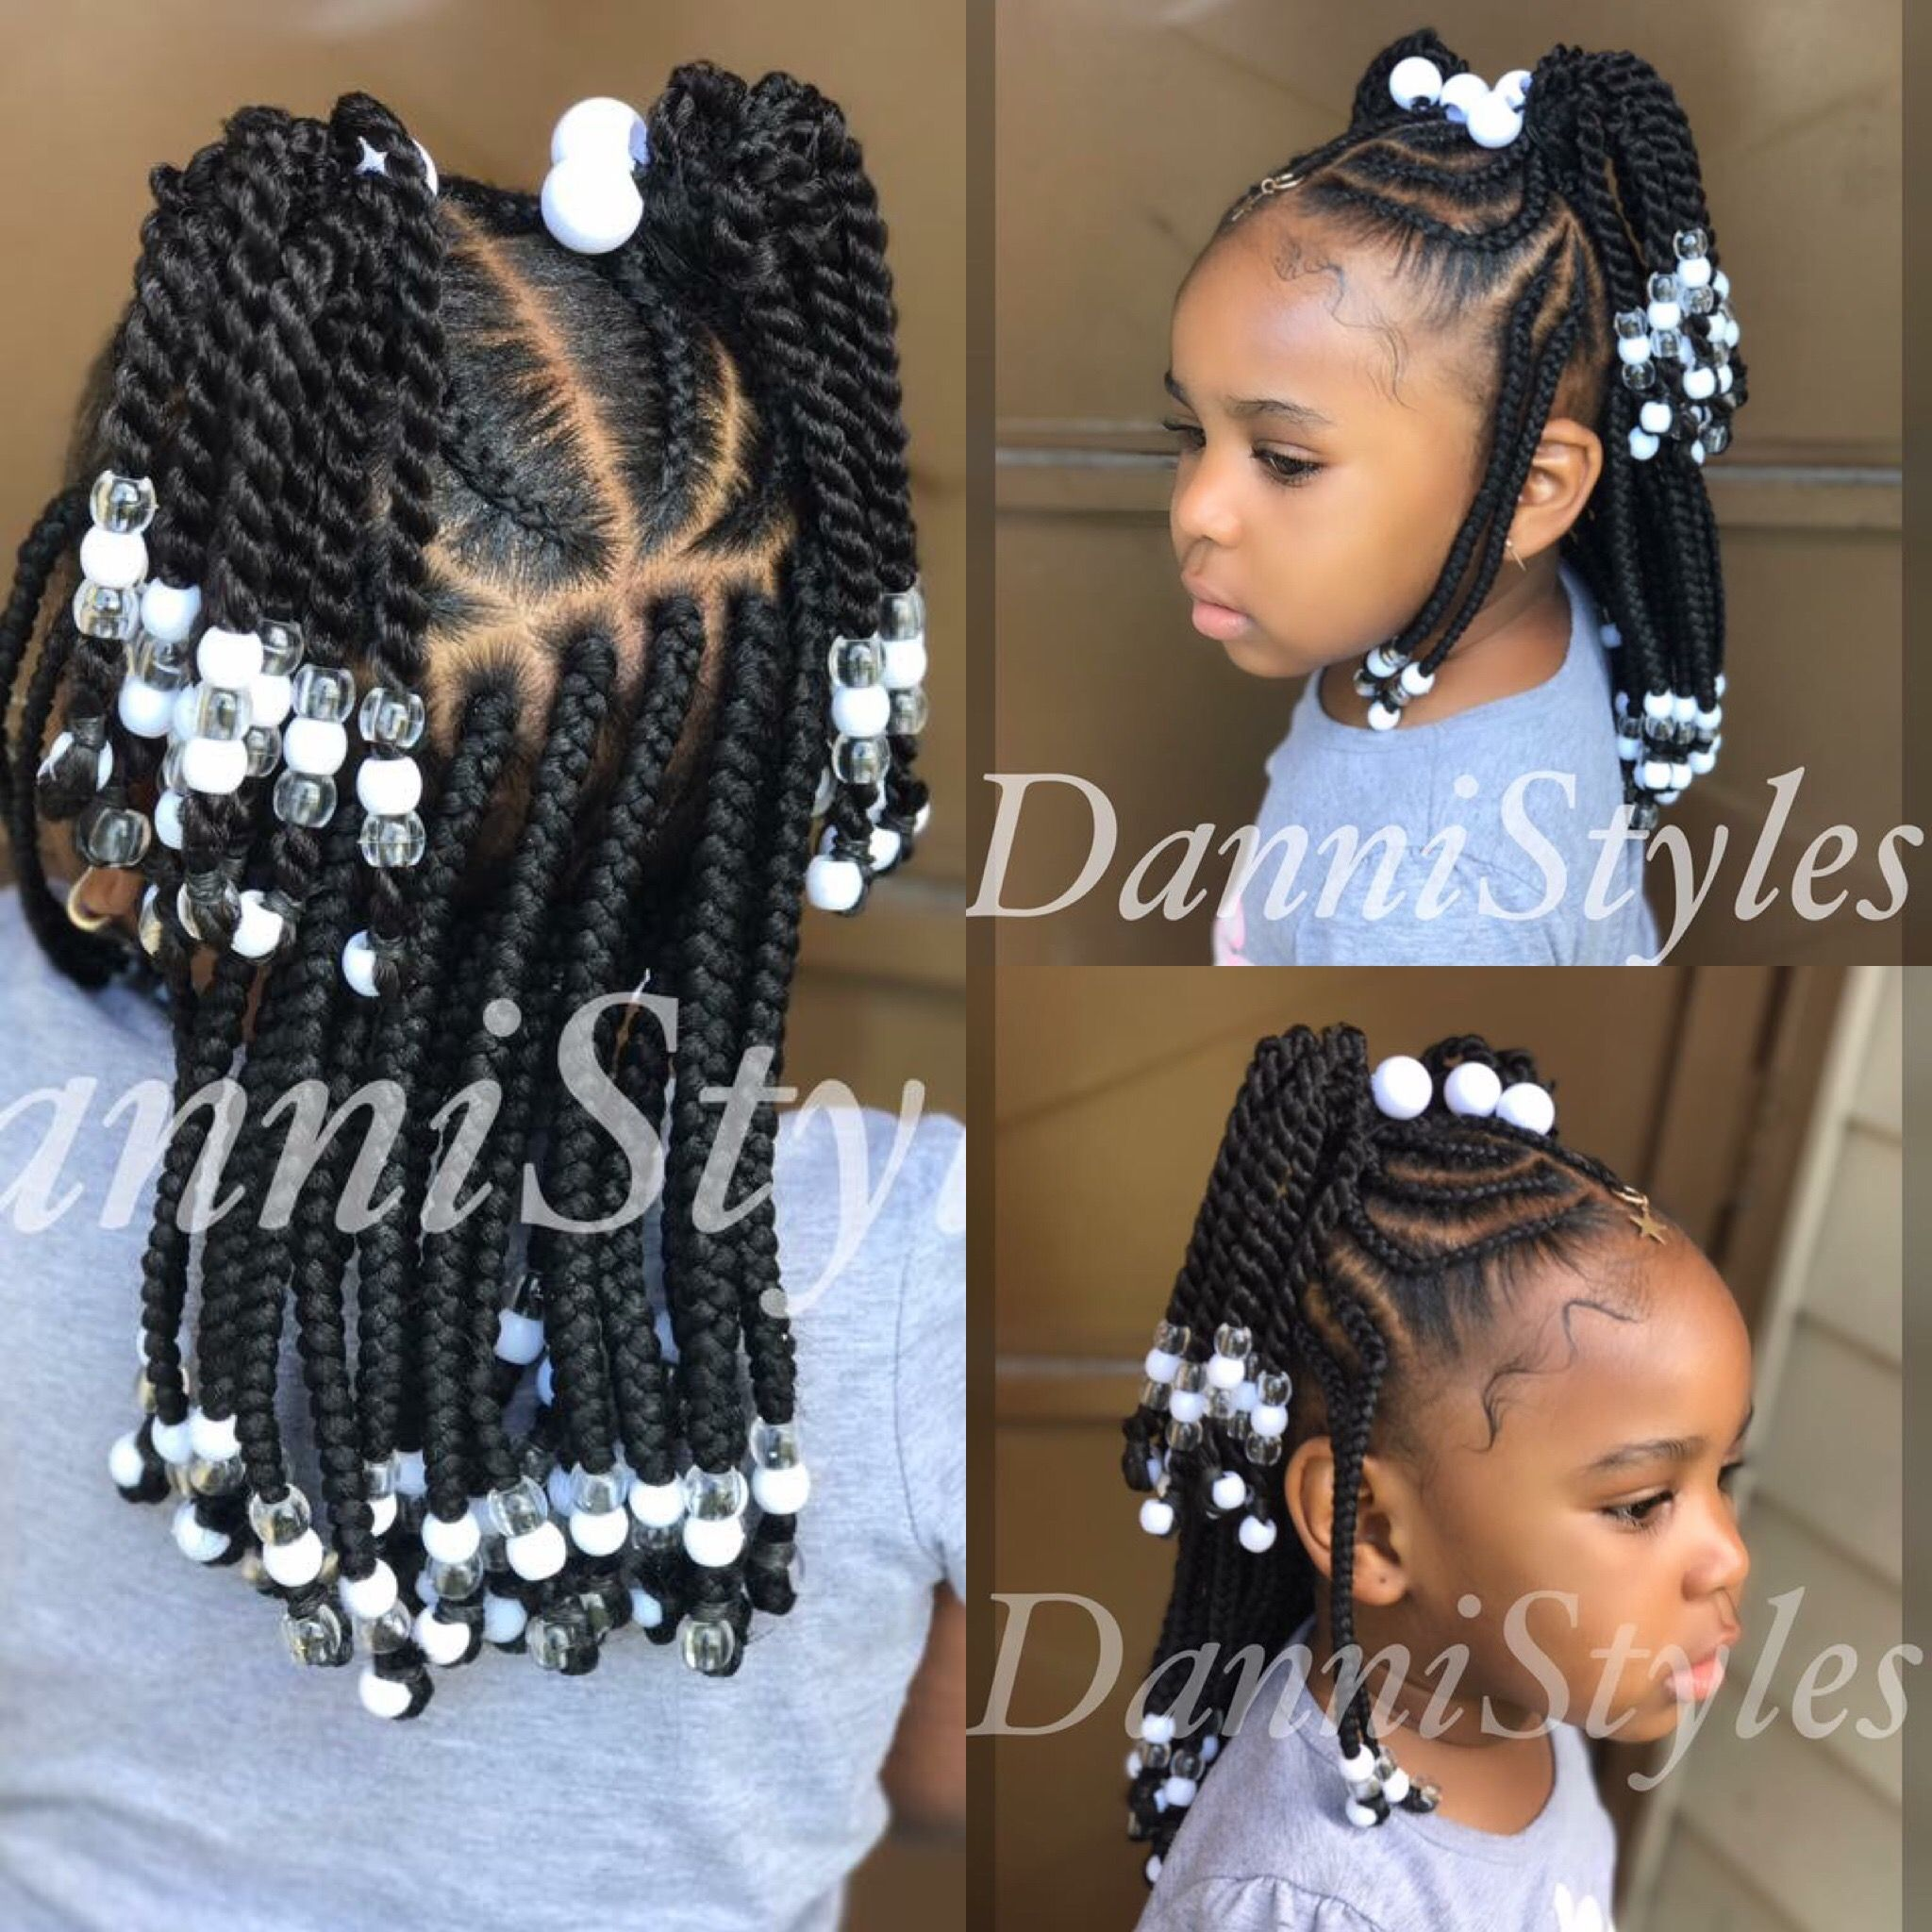 Hair Style Kids Hairstyles Lil Girl Hairstyles Toddler Braided Hairstyles